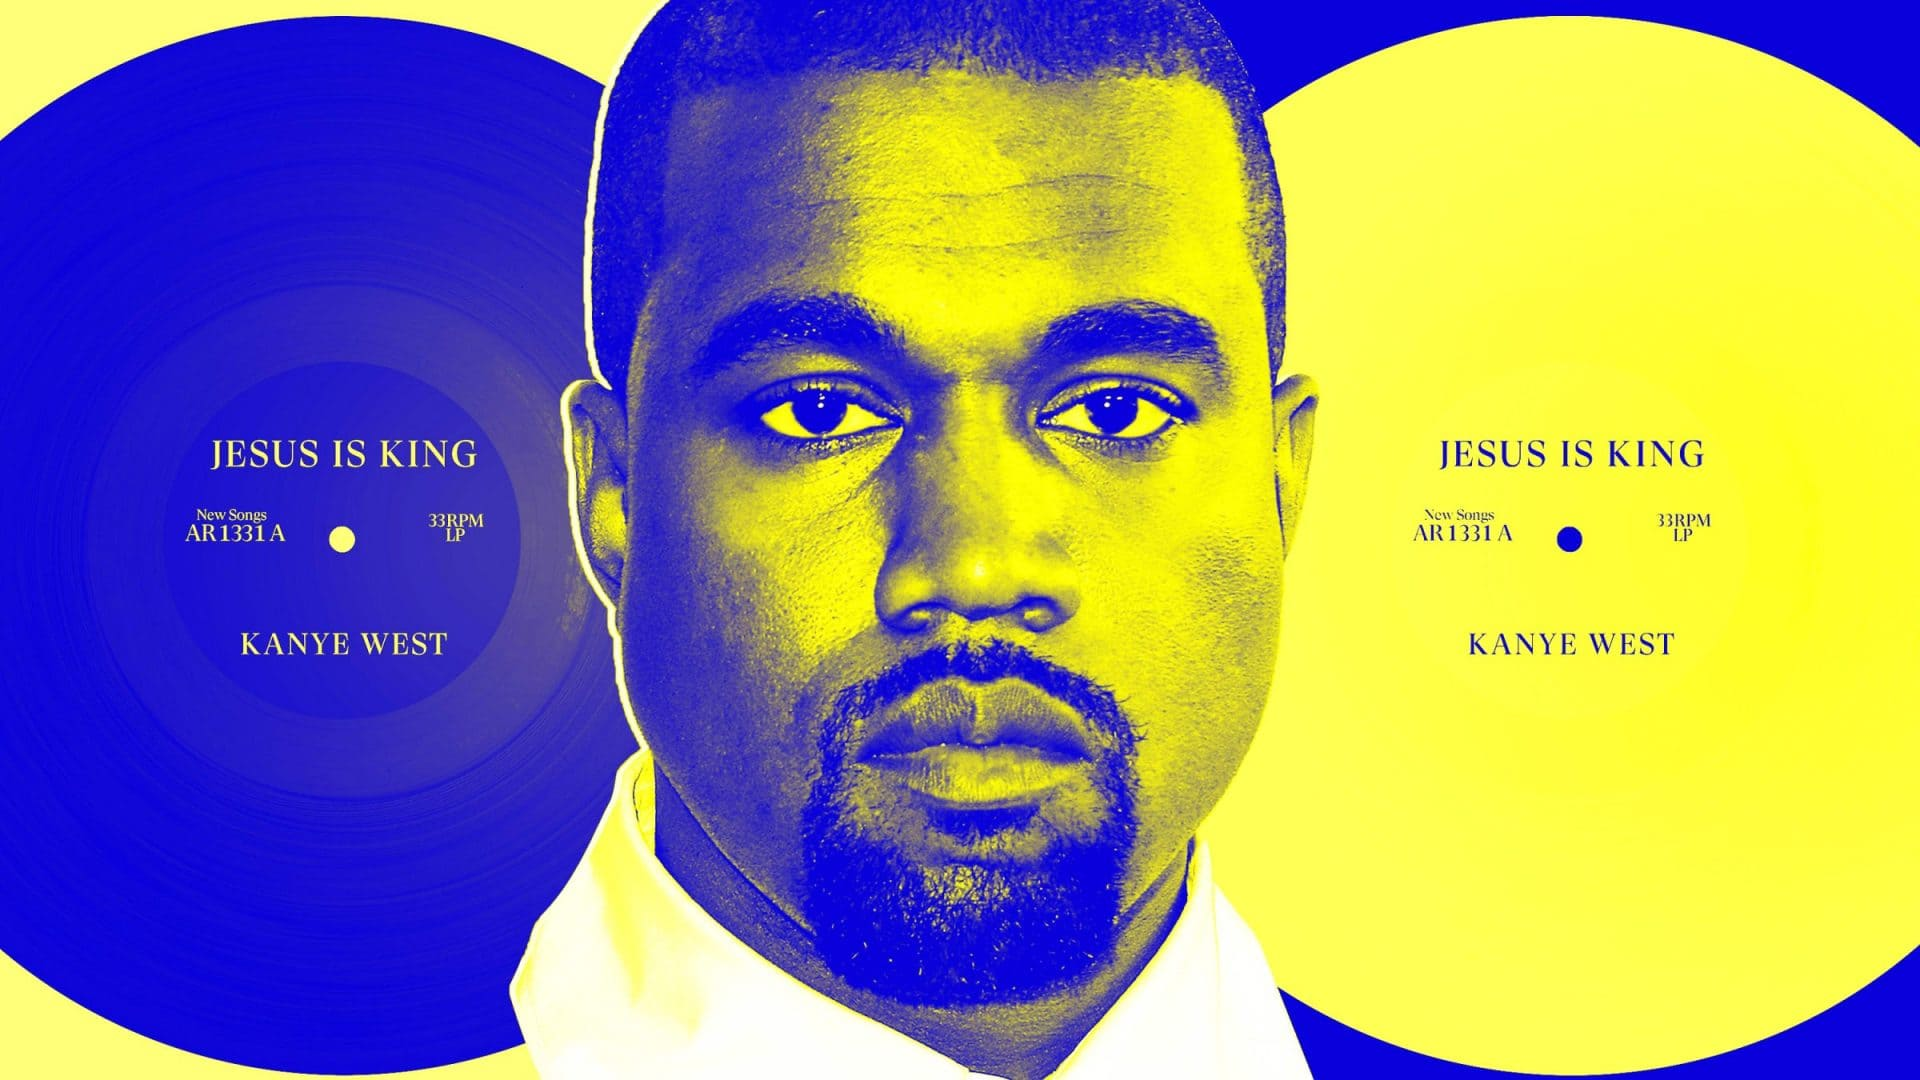 kanye west album jesus is king jaune bleu